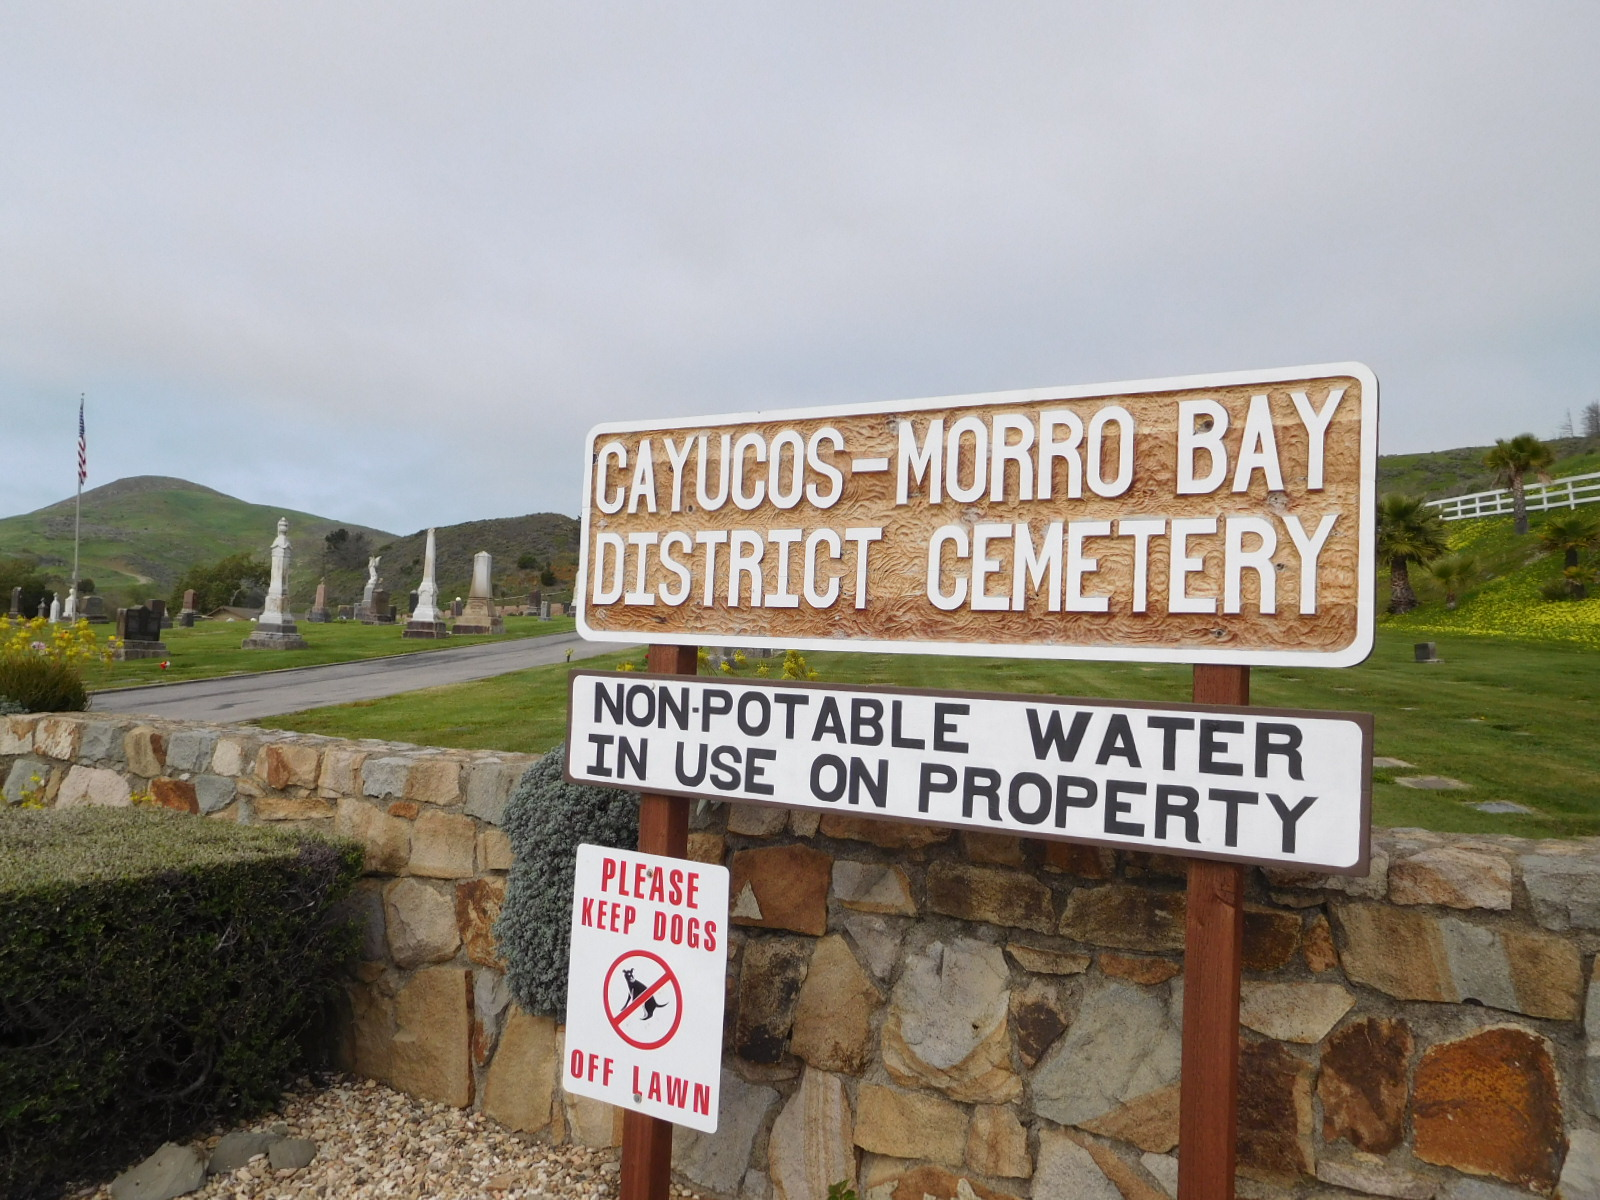 Cayucos-Morro Bay District Cemetery